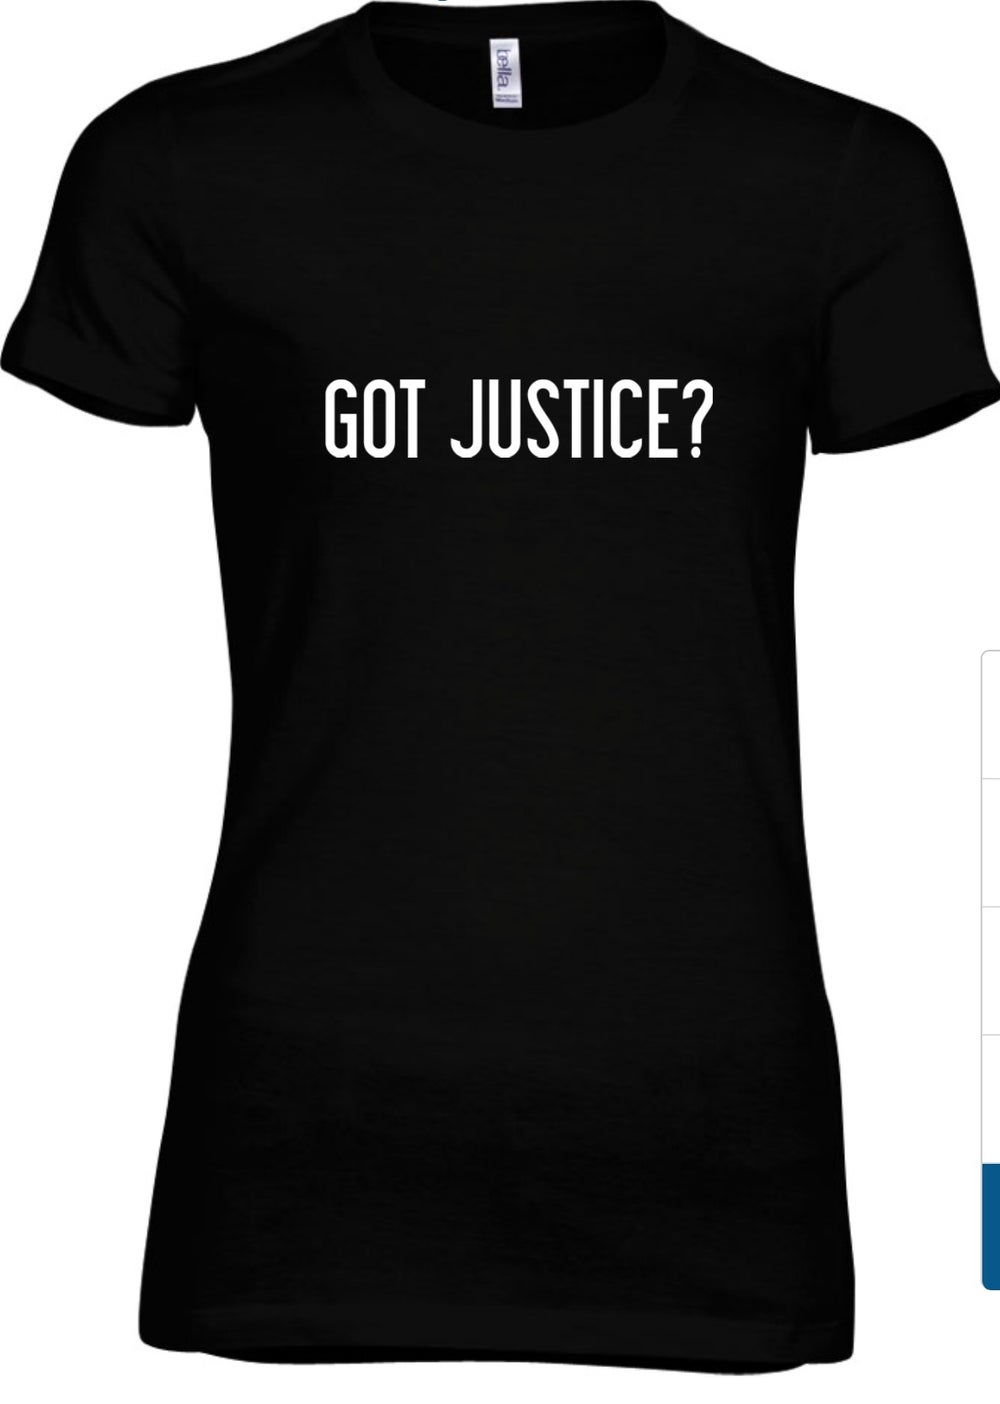 Image of WOMEN'S GOT JUSTICE? (Tshirt will reflect Jeremiah 22:3)